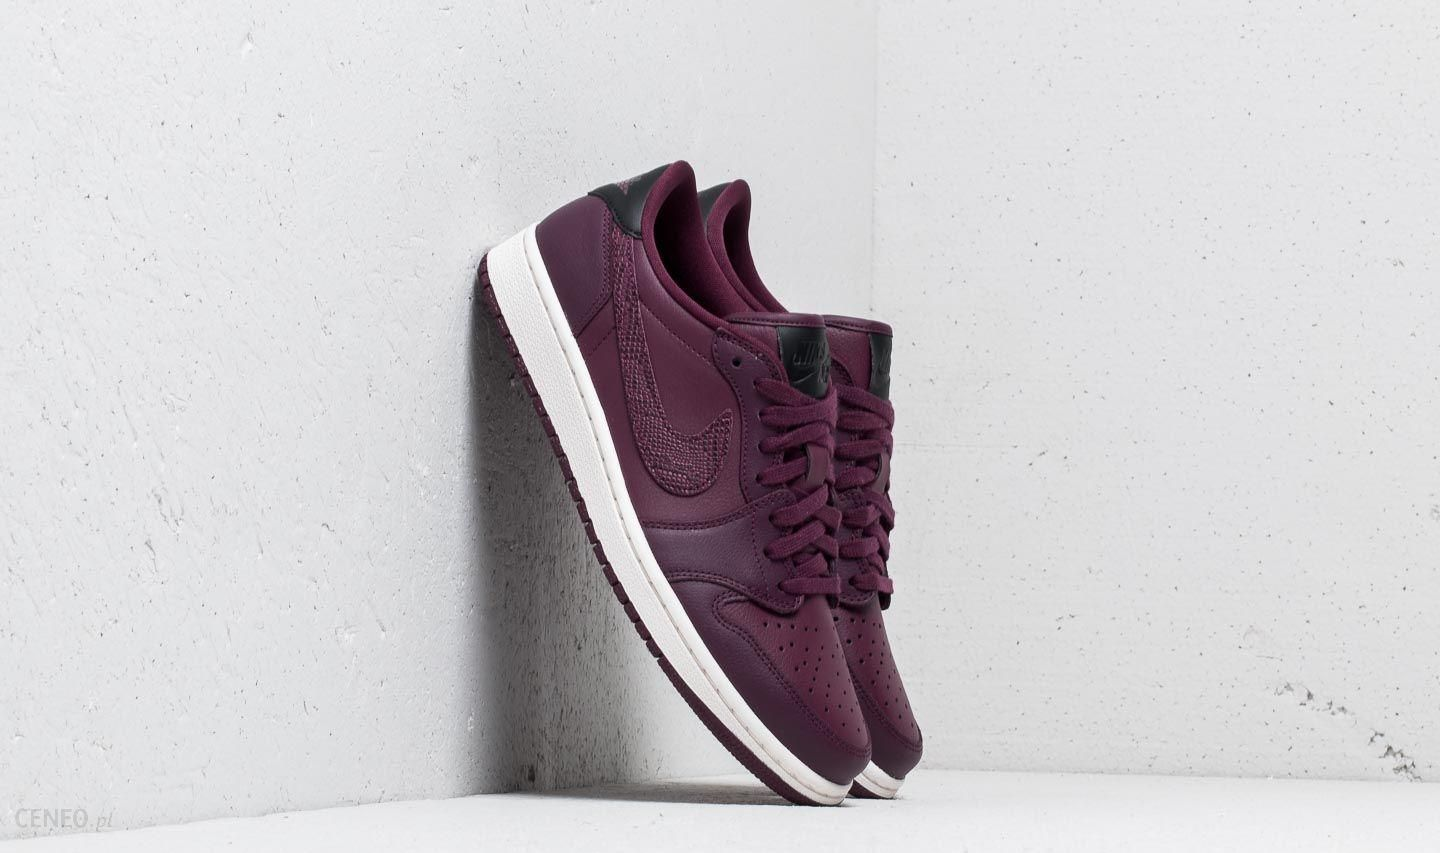 timeless design 7c824 e3a6d Wmns Air Jordan 1 Retro Low OG Bordeaux  Black-Phantom - zdjęcie 1